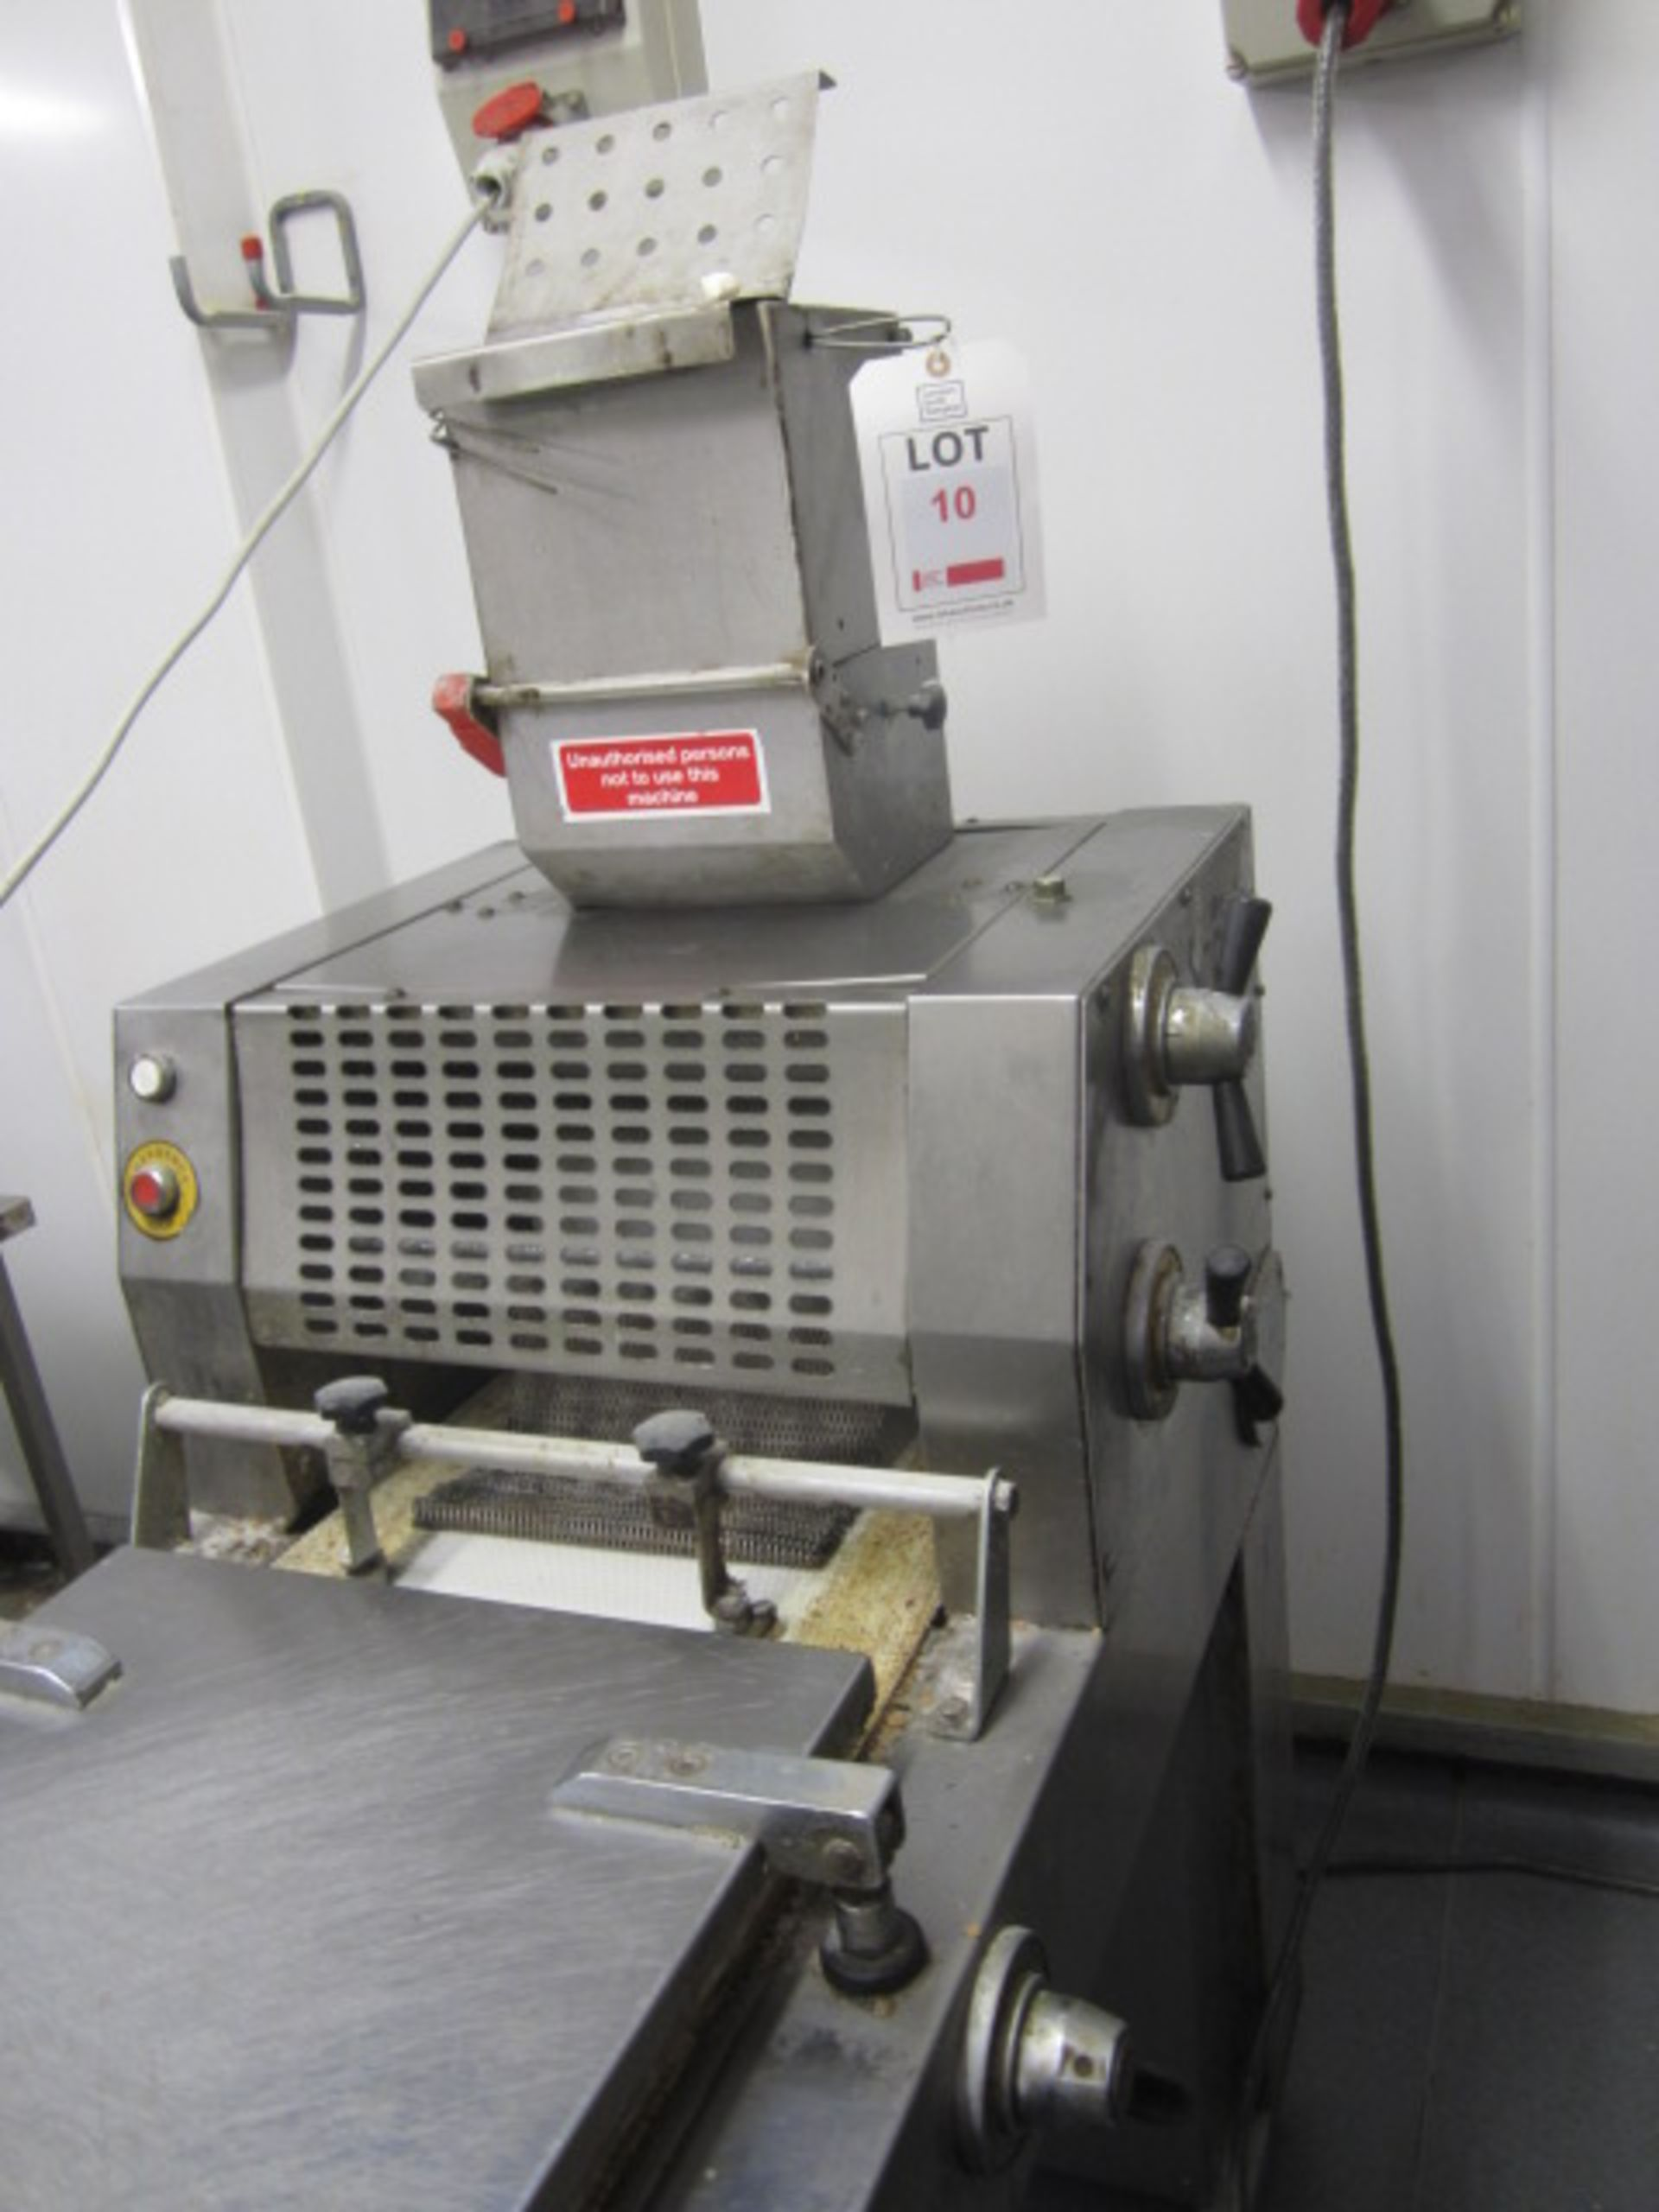 Lot 10 - Pro Bake Scobie LM3000 bread moulder/former s/n: 09010 (Please note: located on 1st Floor, purchaser